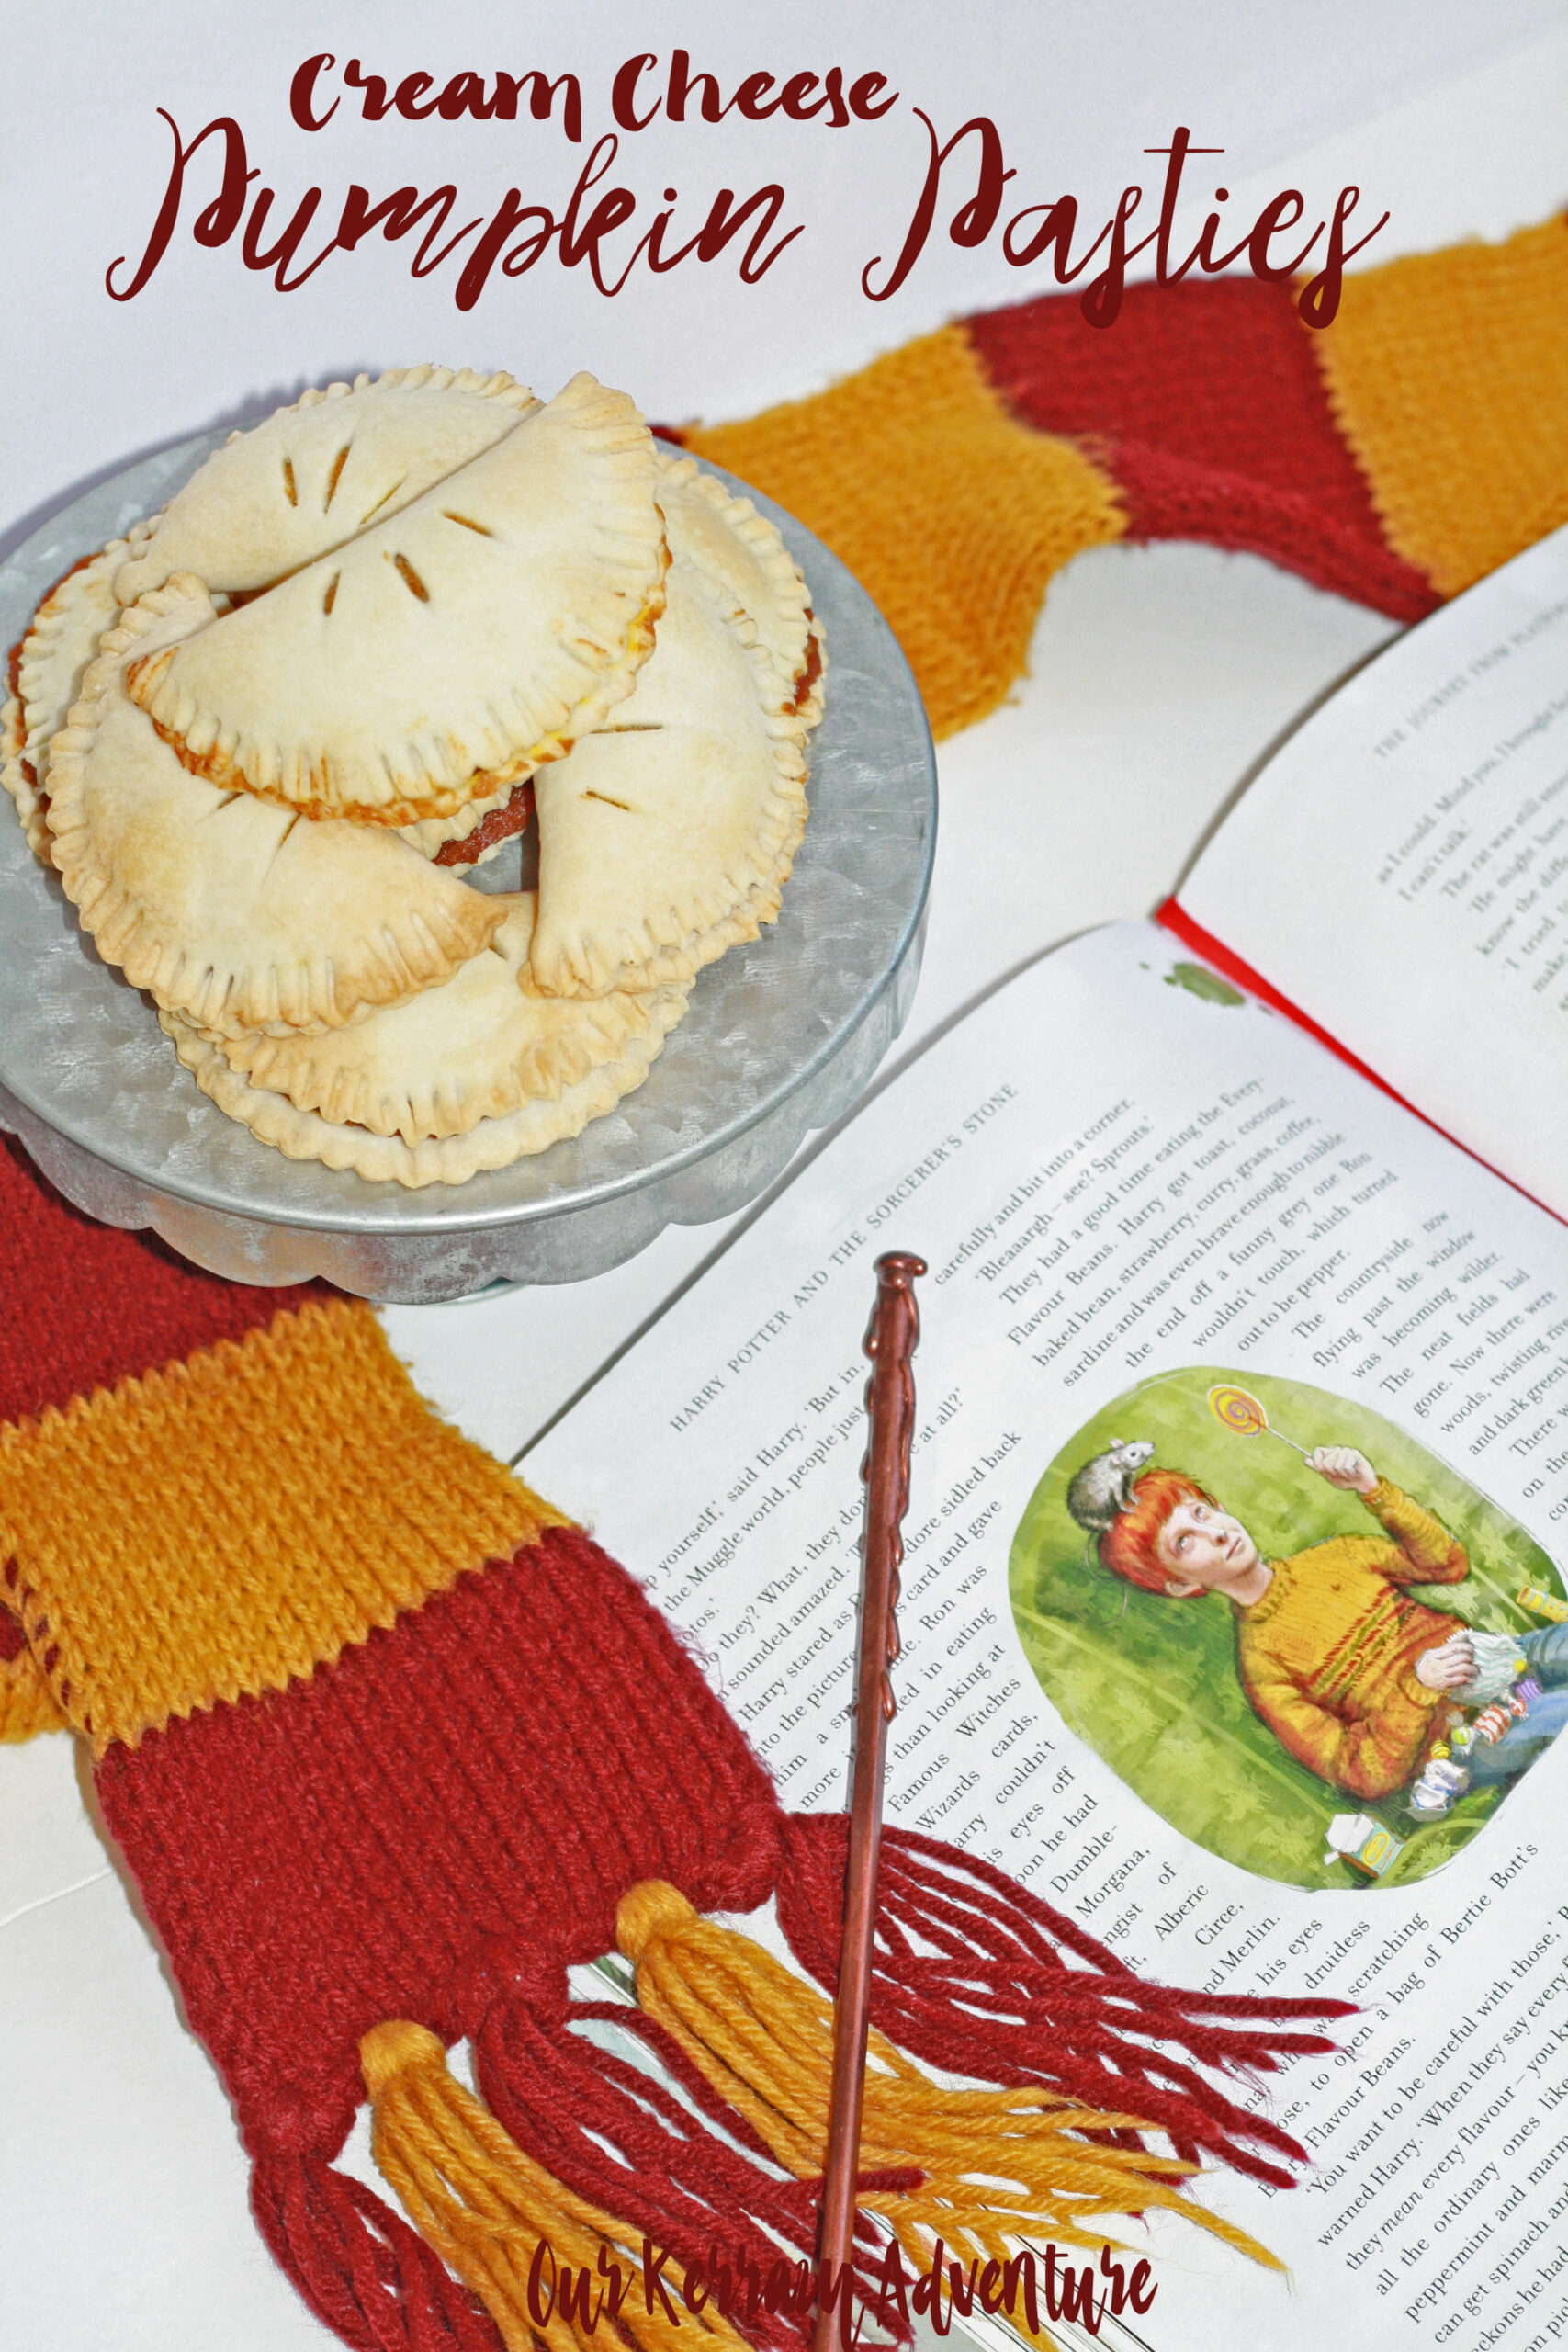 Harry Potter Food Ideas For Your Harry Potter Party - Our ..